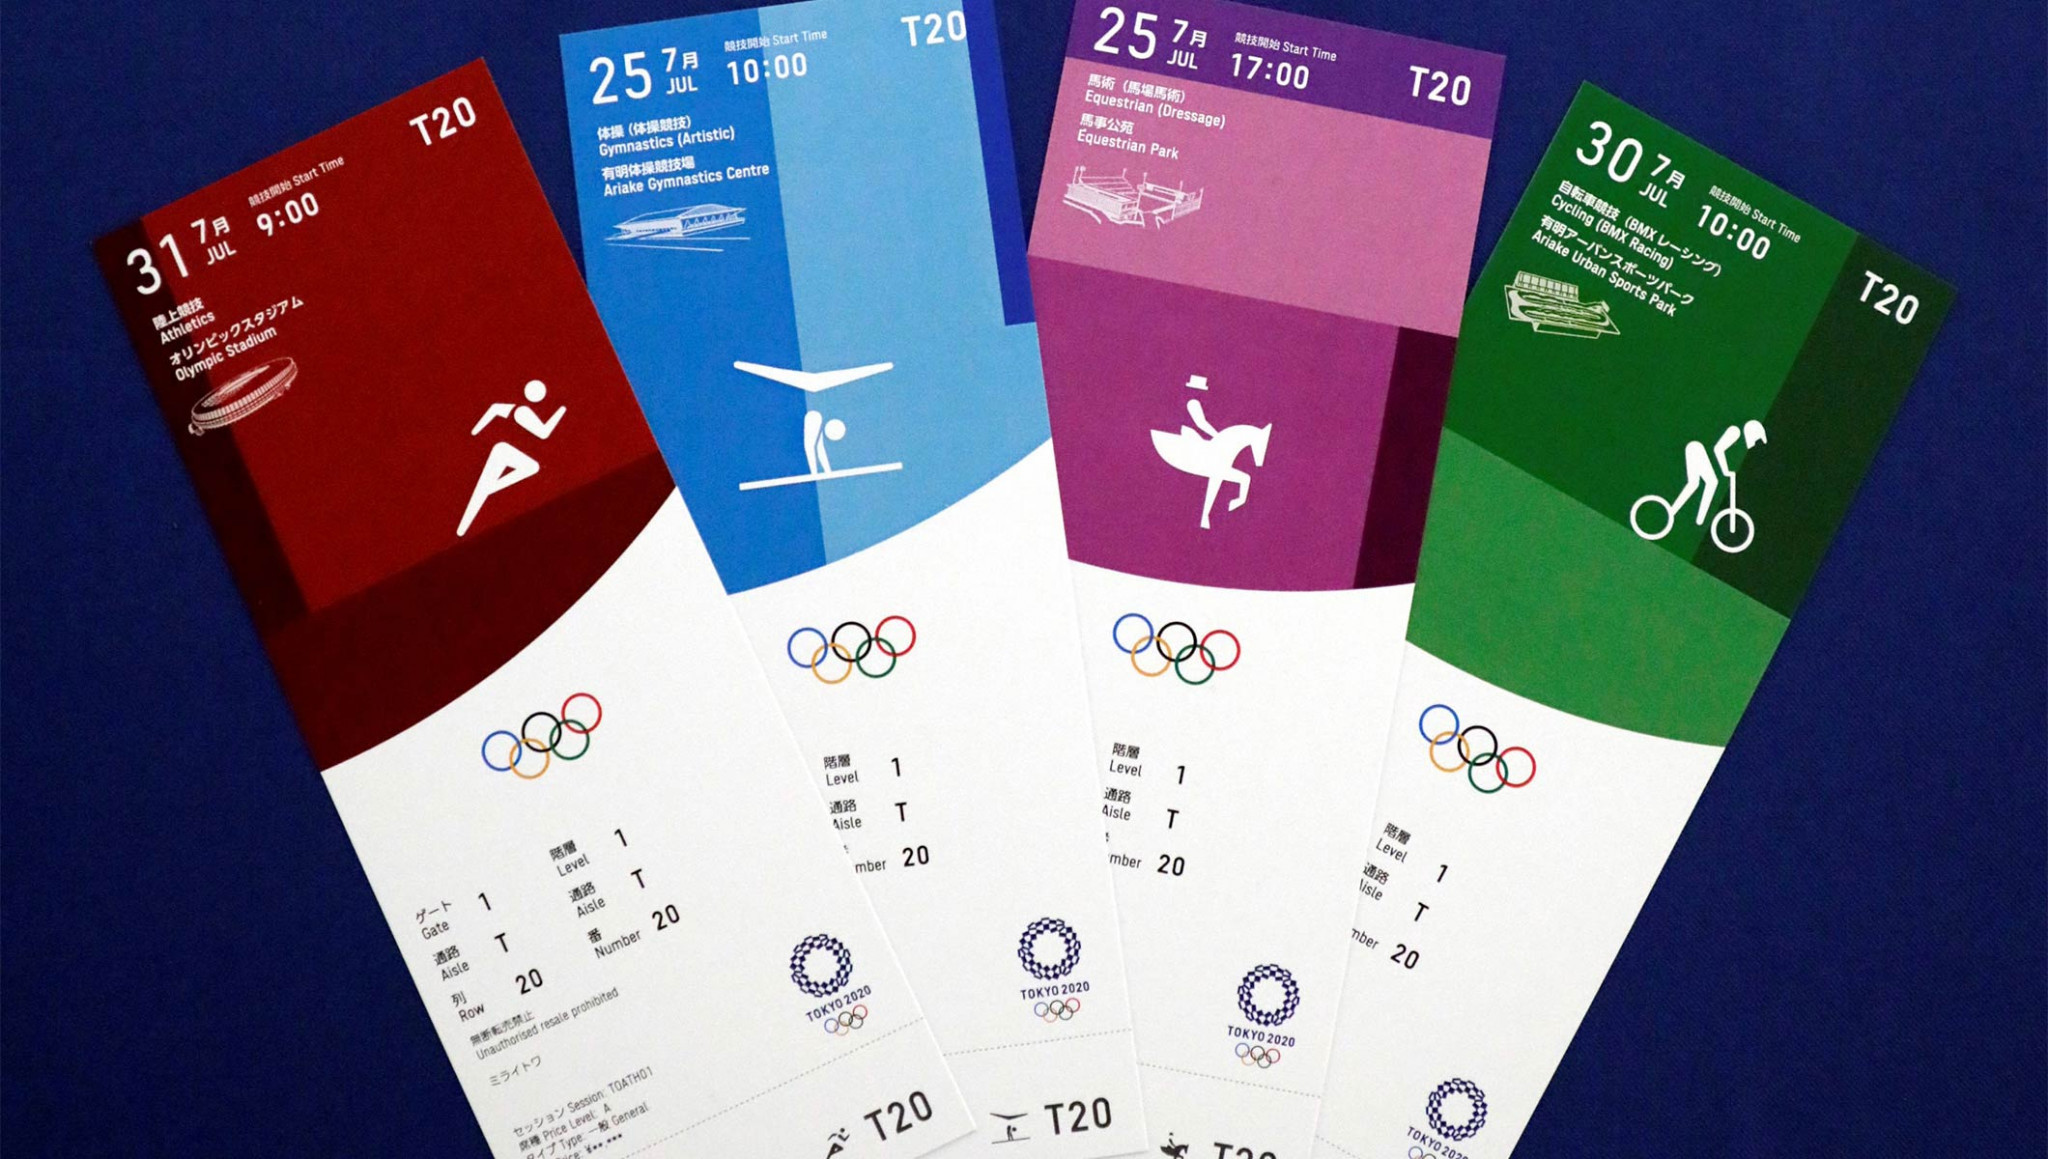 Tokyo 2020 offers fans ticket refunds and commemorative Games tickets